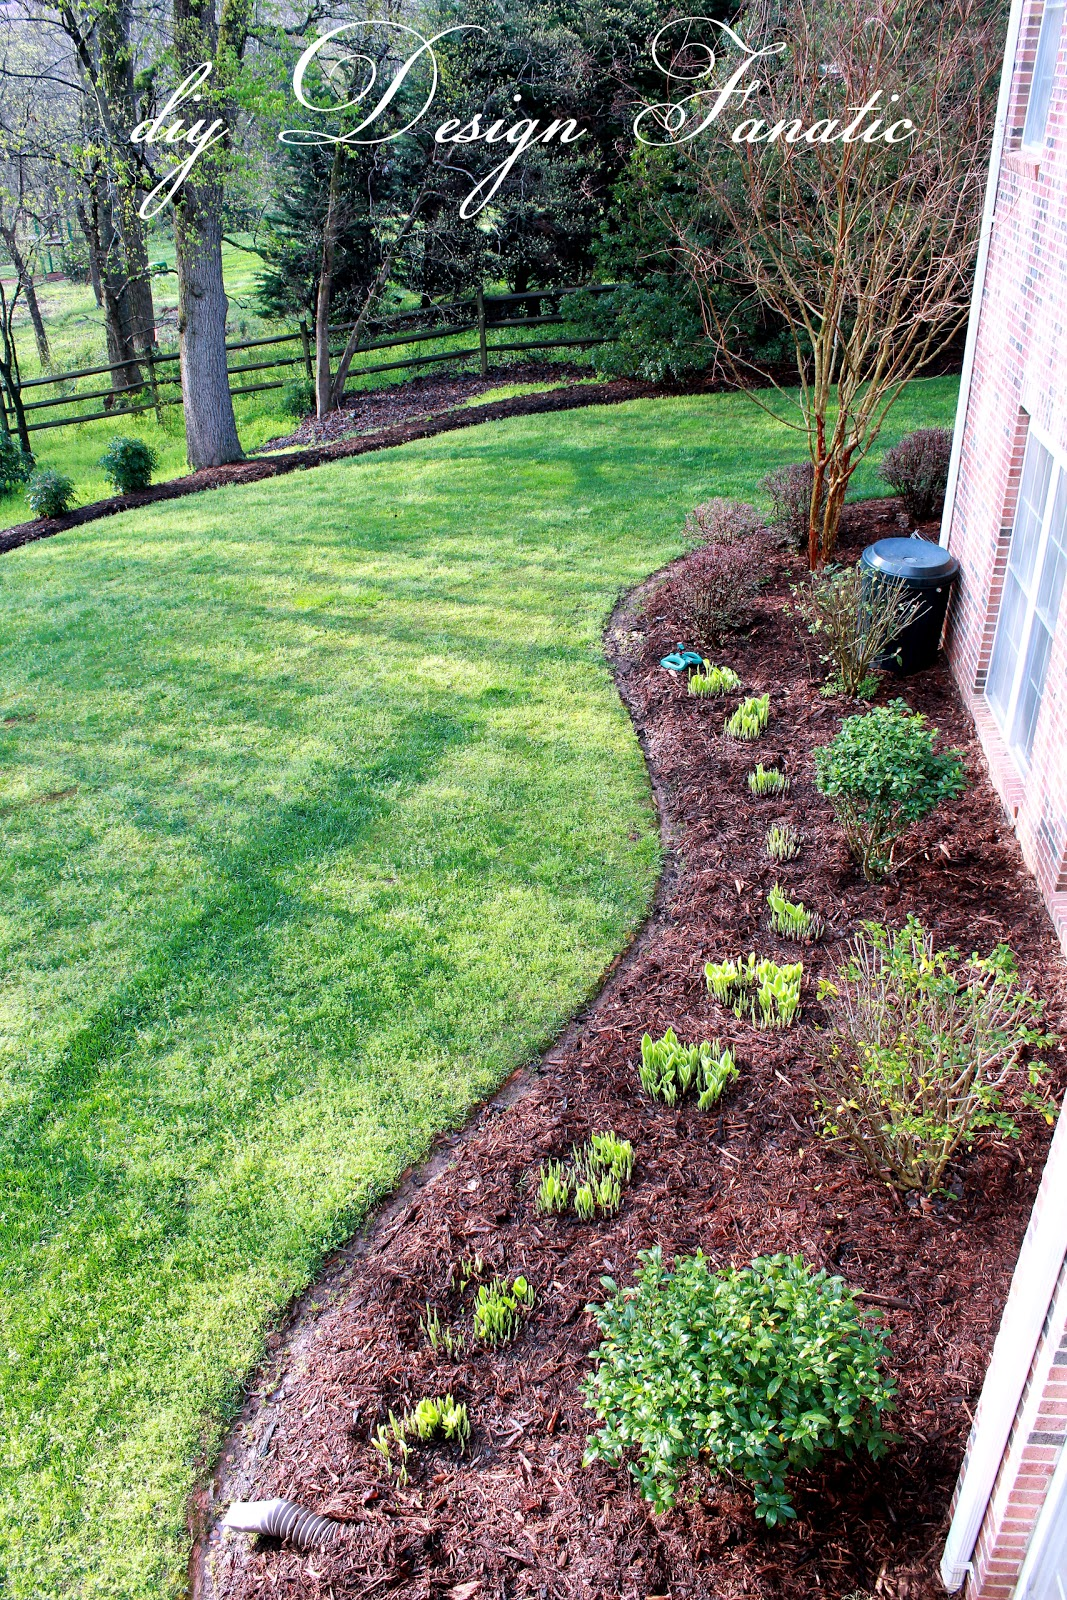 Landscaping Supply Near Me - Landscape Ideas on Backyard Landscape Designers Near Me  id=84070